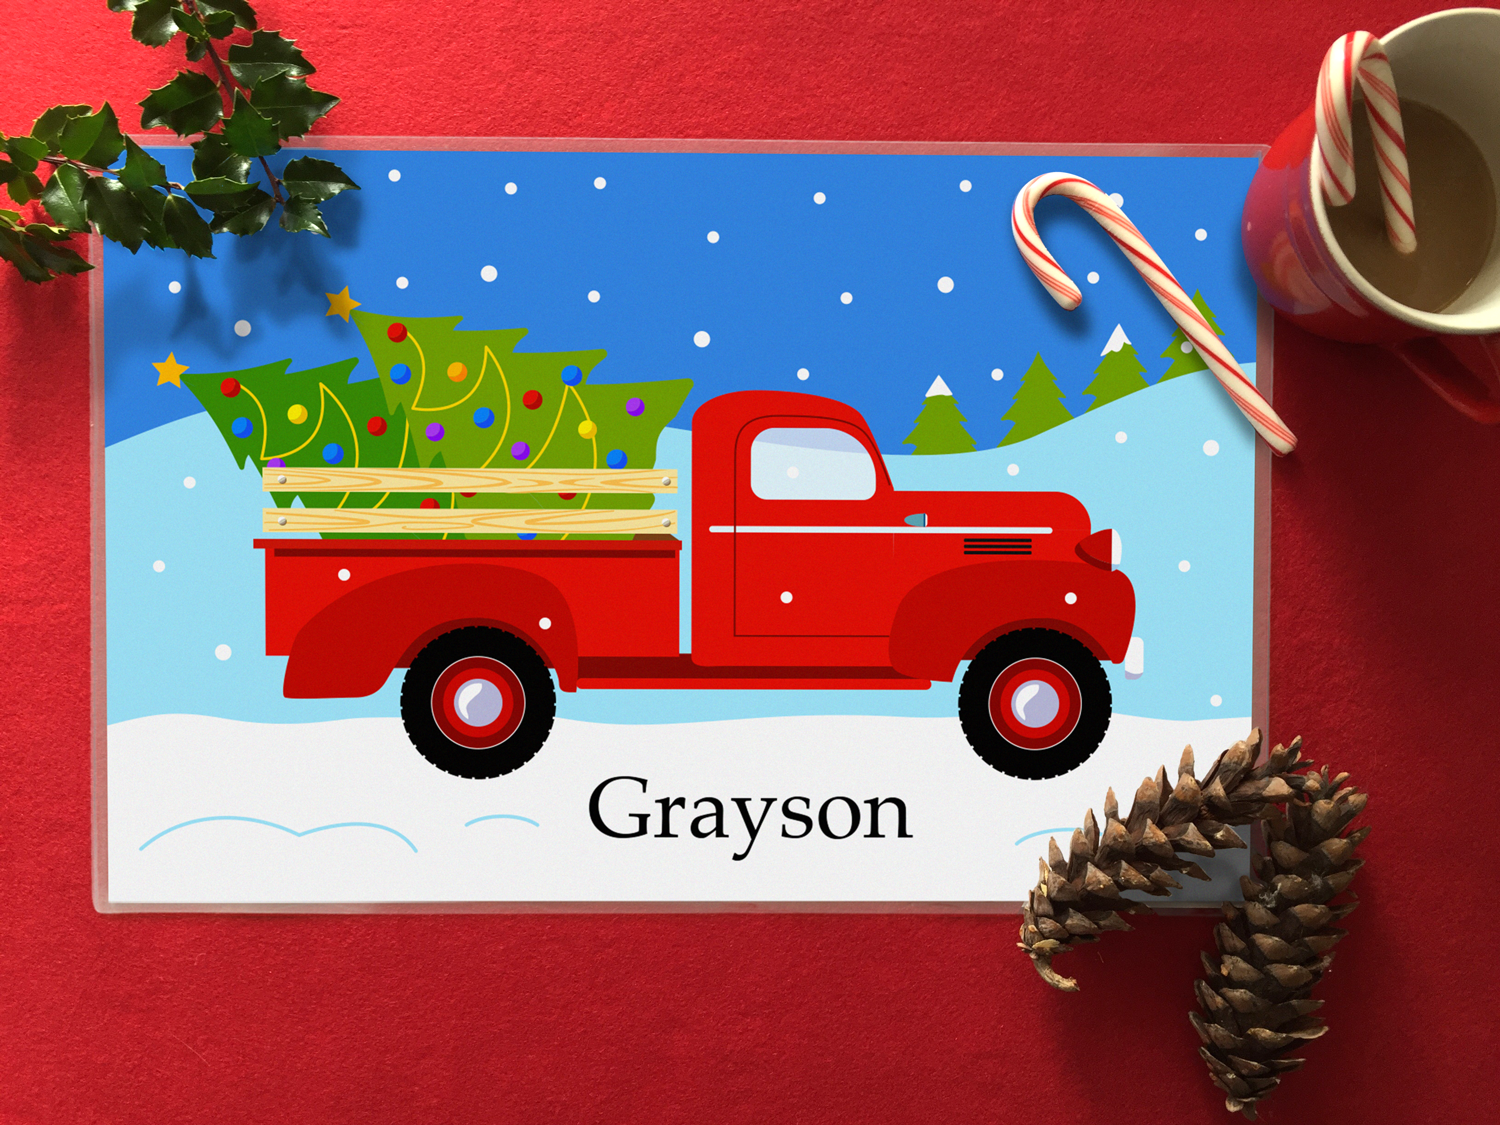 Vintage Red Truck Christmas Placemats.Christmas Tree Truck Personalized Kids Placemat Art Appeel